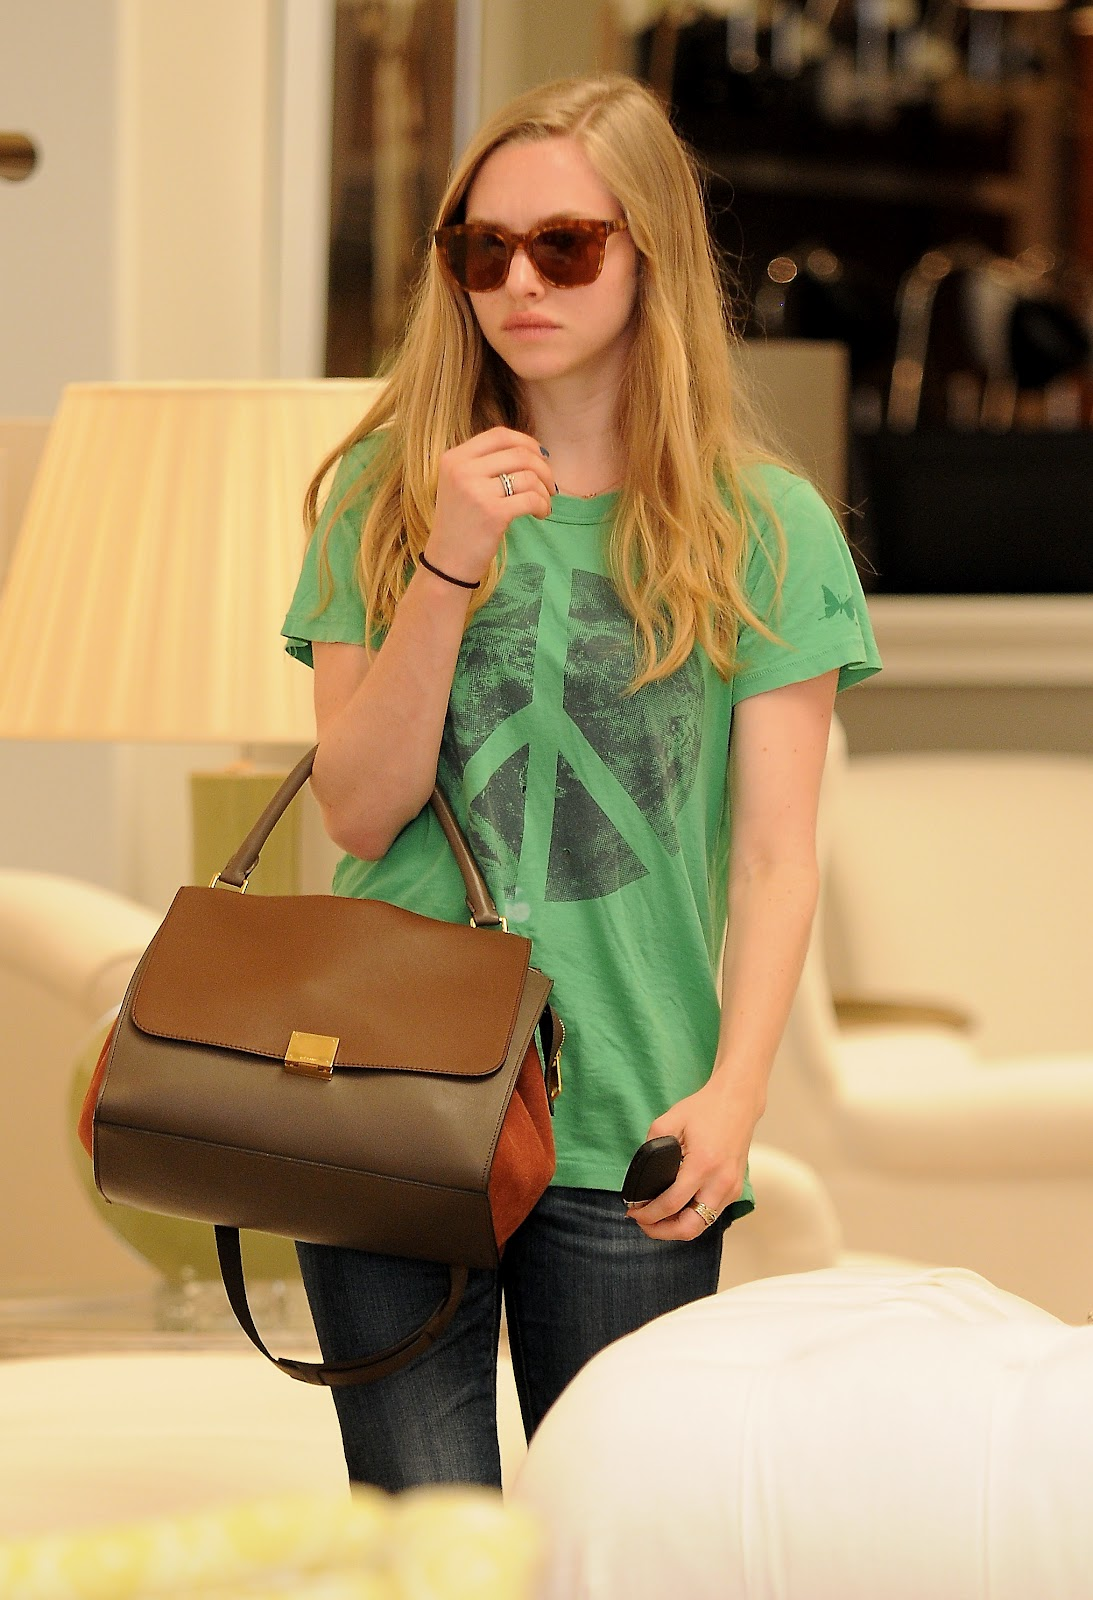 Amanda Seyfried Spotted : d33blog